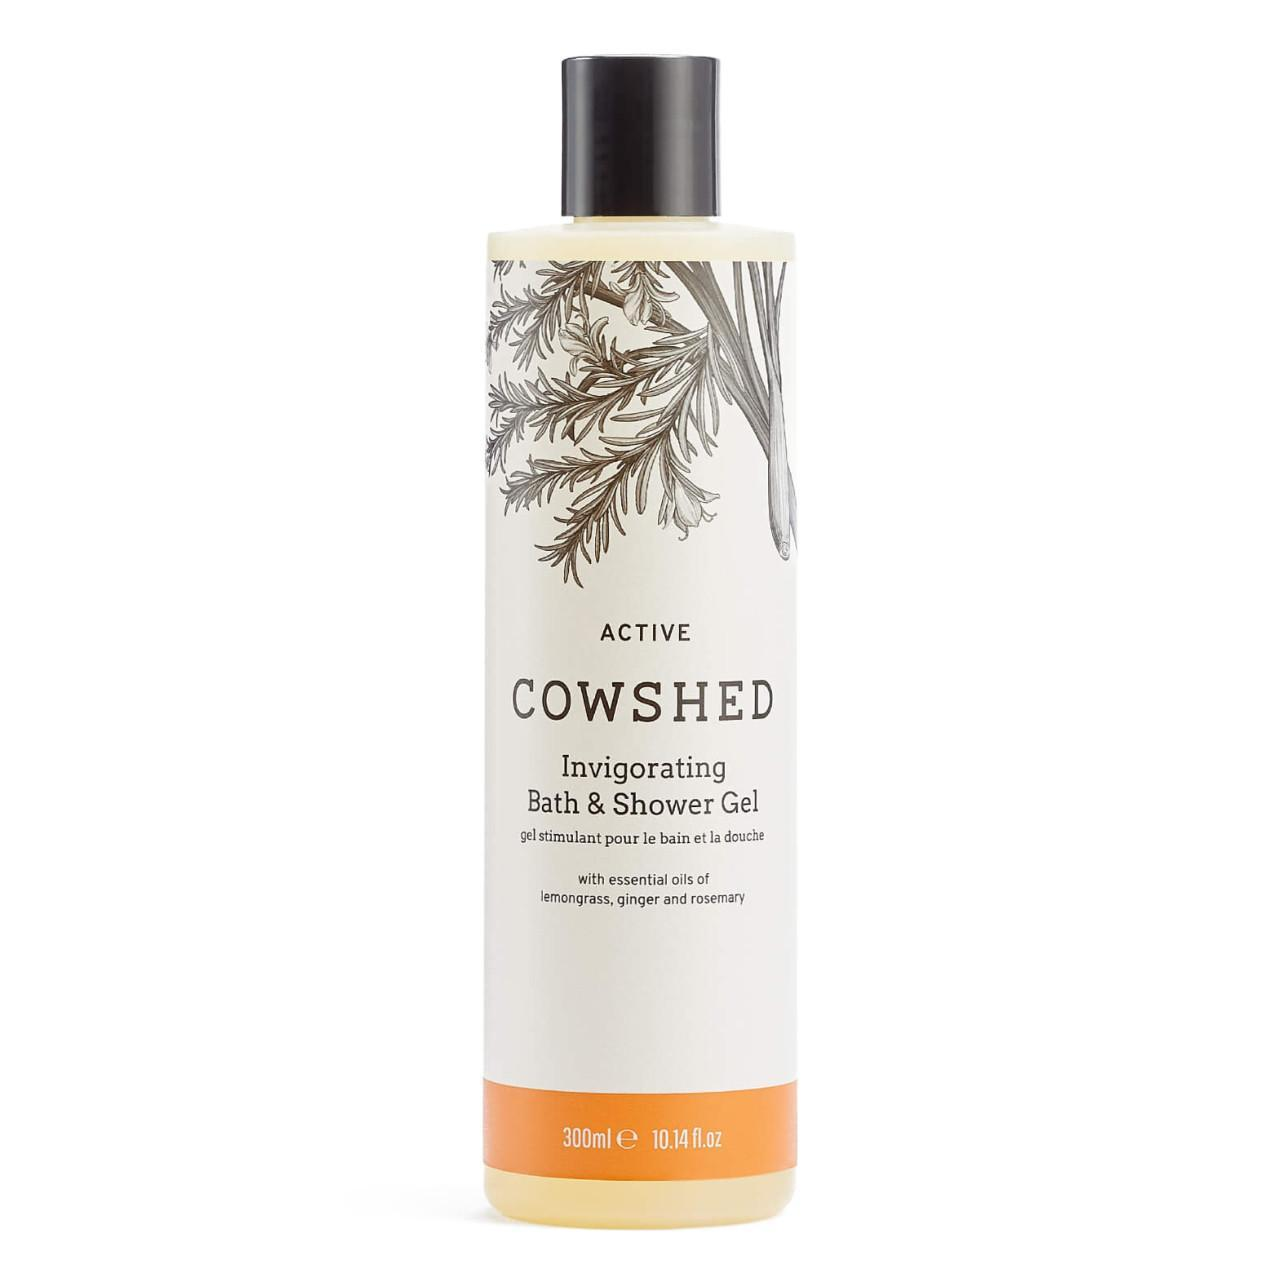 Cowshed Bath and Shower